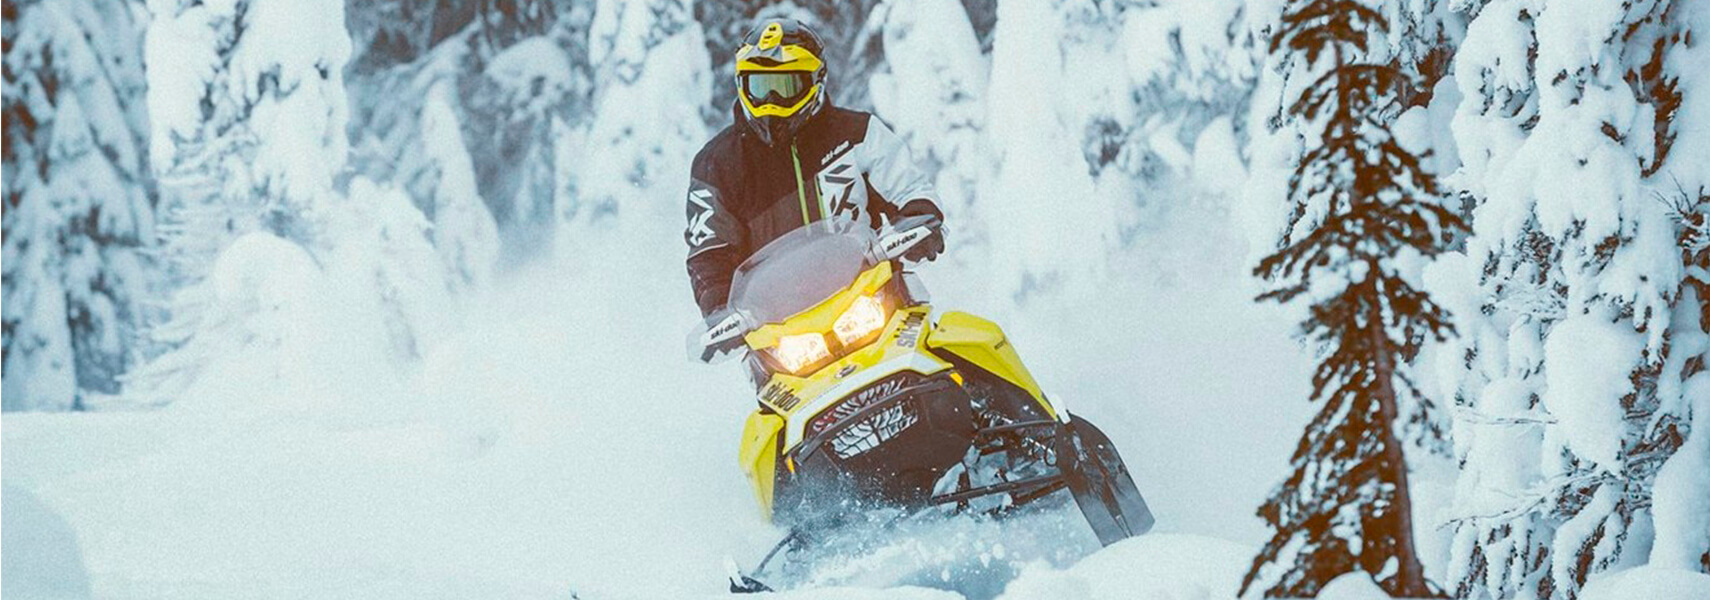 SKI-DOO - 2020 Backcountry X-RS